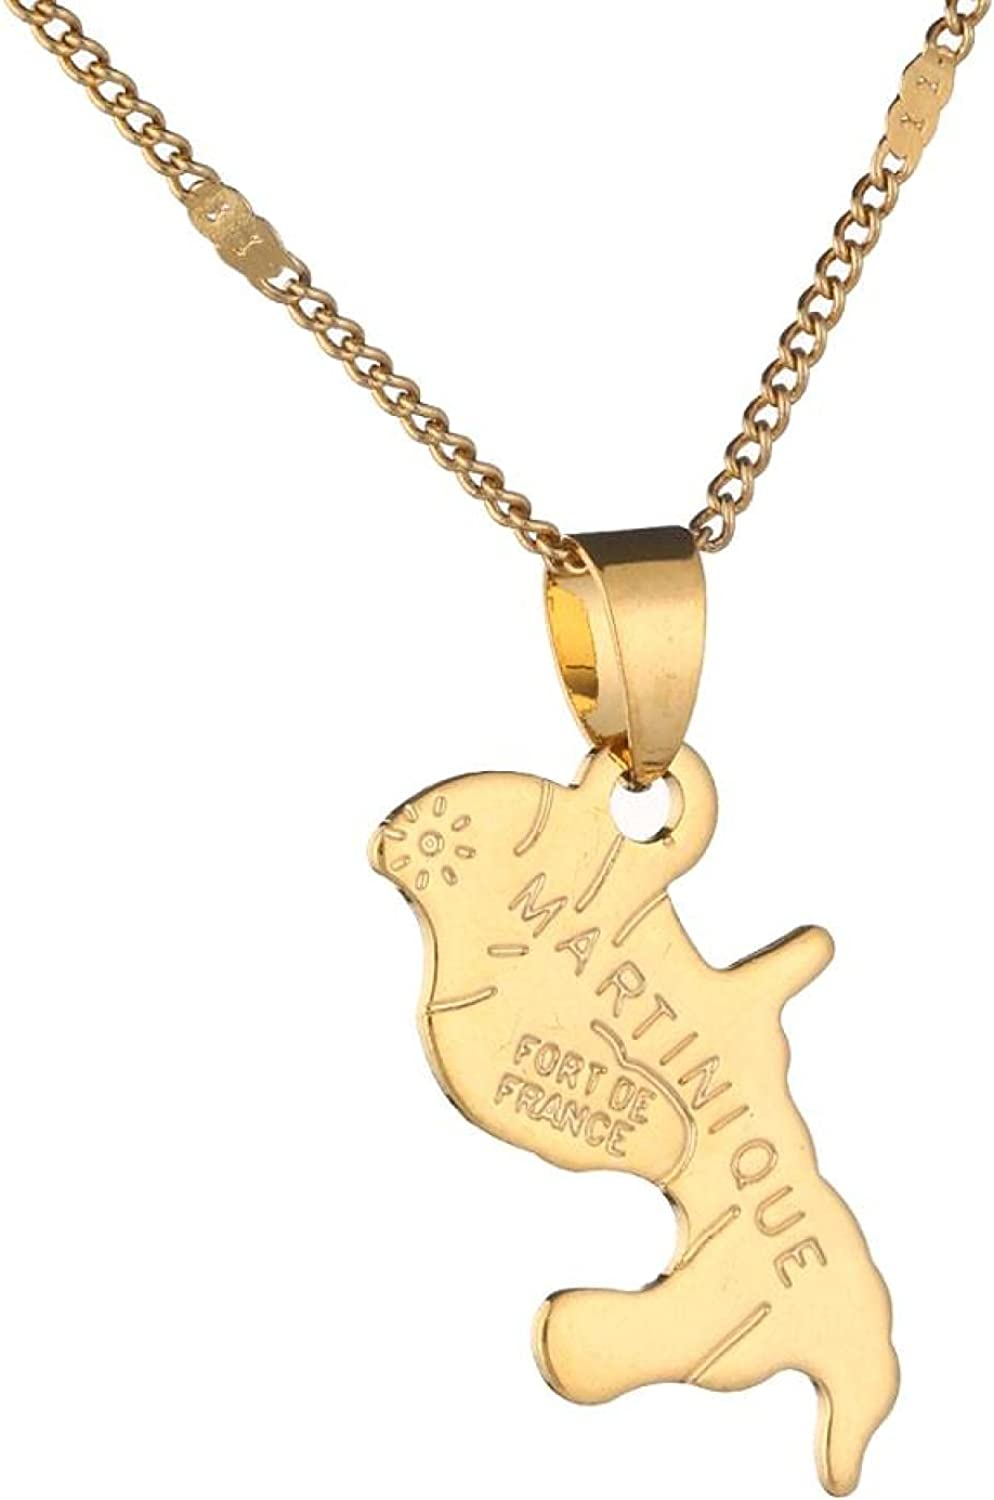 Map Surprise price Of Martinique Necklace Pendants Color Women For Jewelry Gold OFFicial mail order